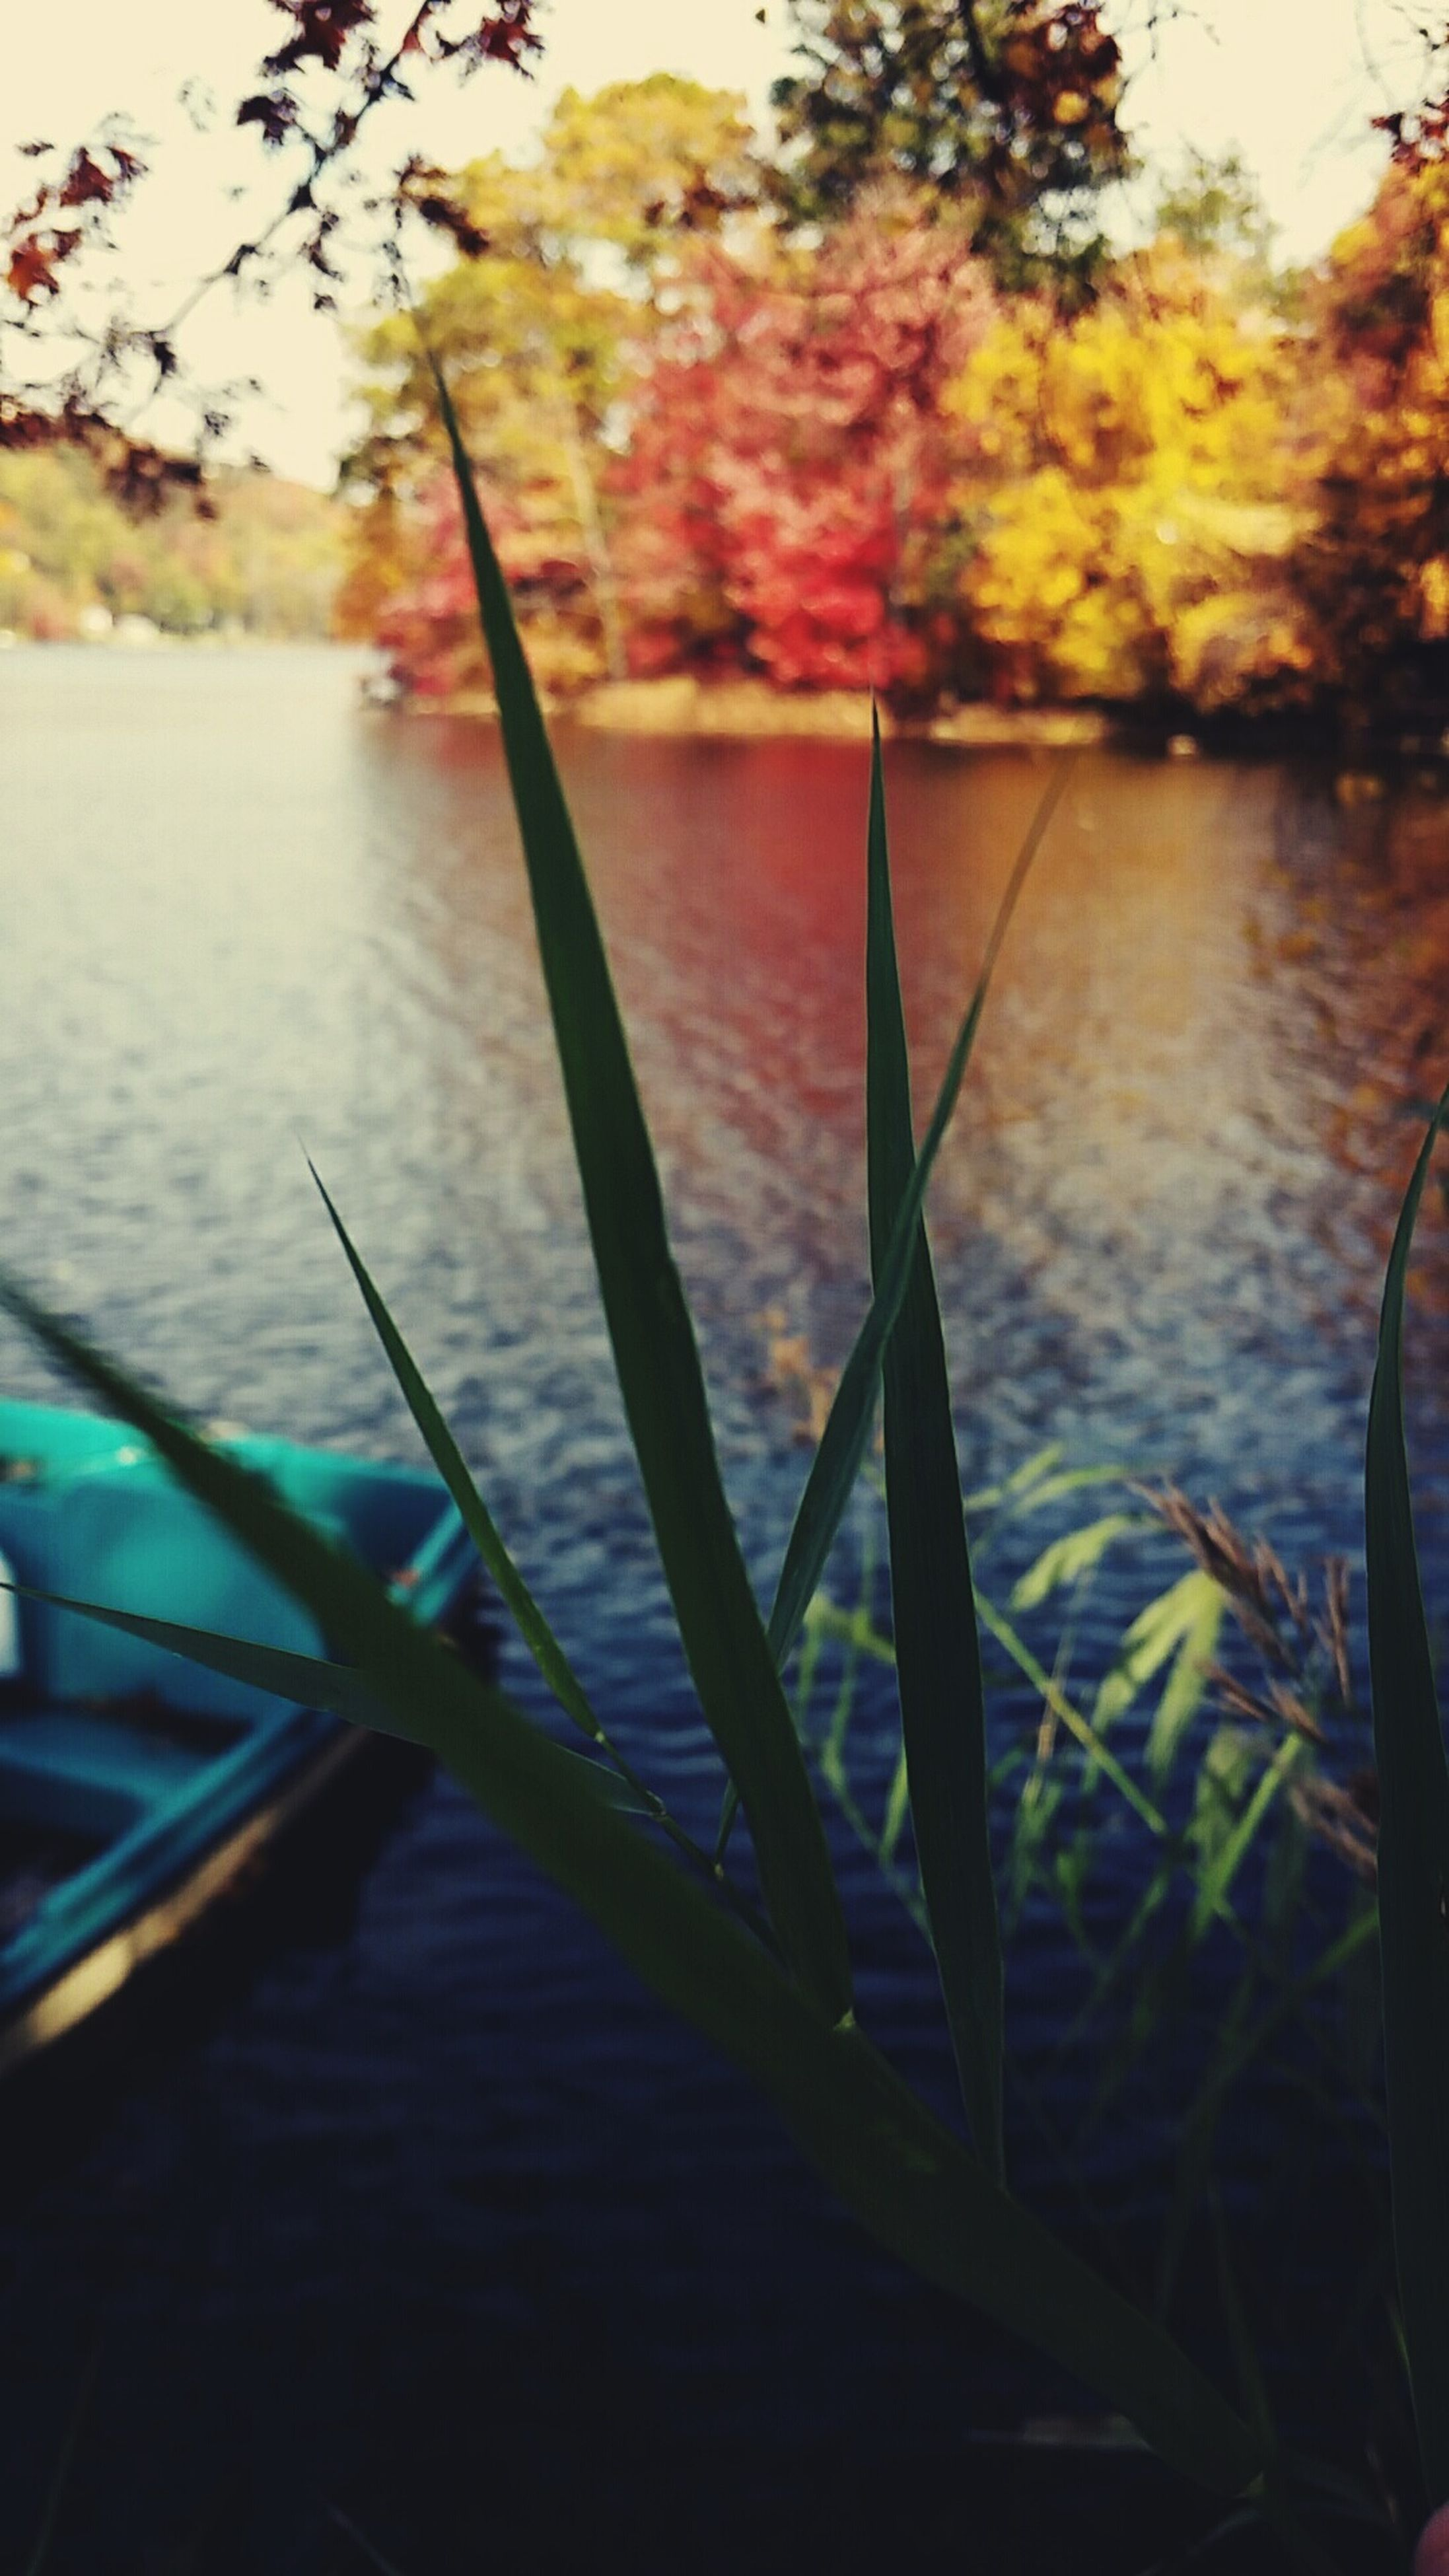 water, lake, reflection, nature, river, tranquility, waterfront, plant, day, tree, no people, outdoors, beauty in nature, leaf, rippled, growth, close-up, boat, pond, sunlight